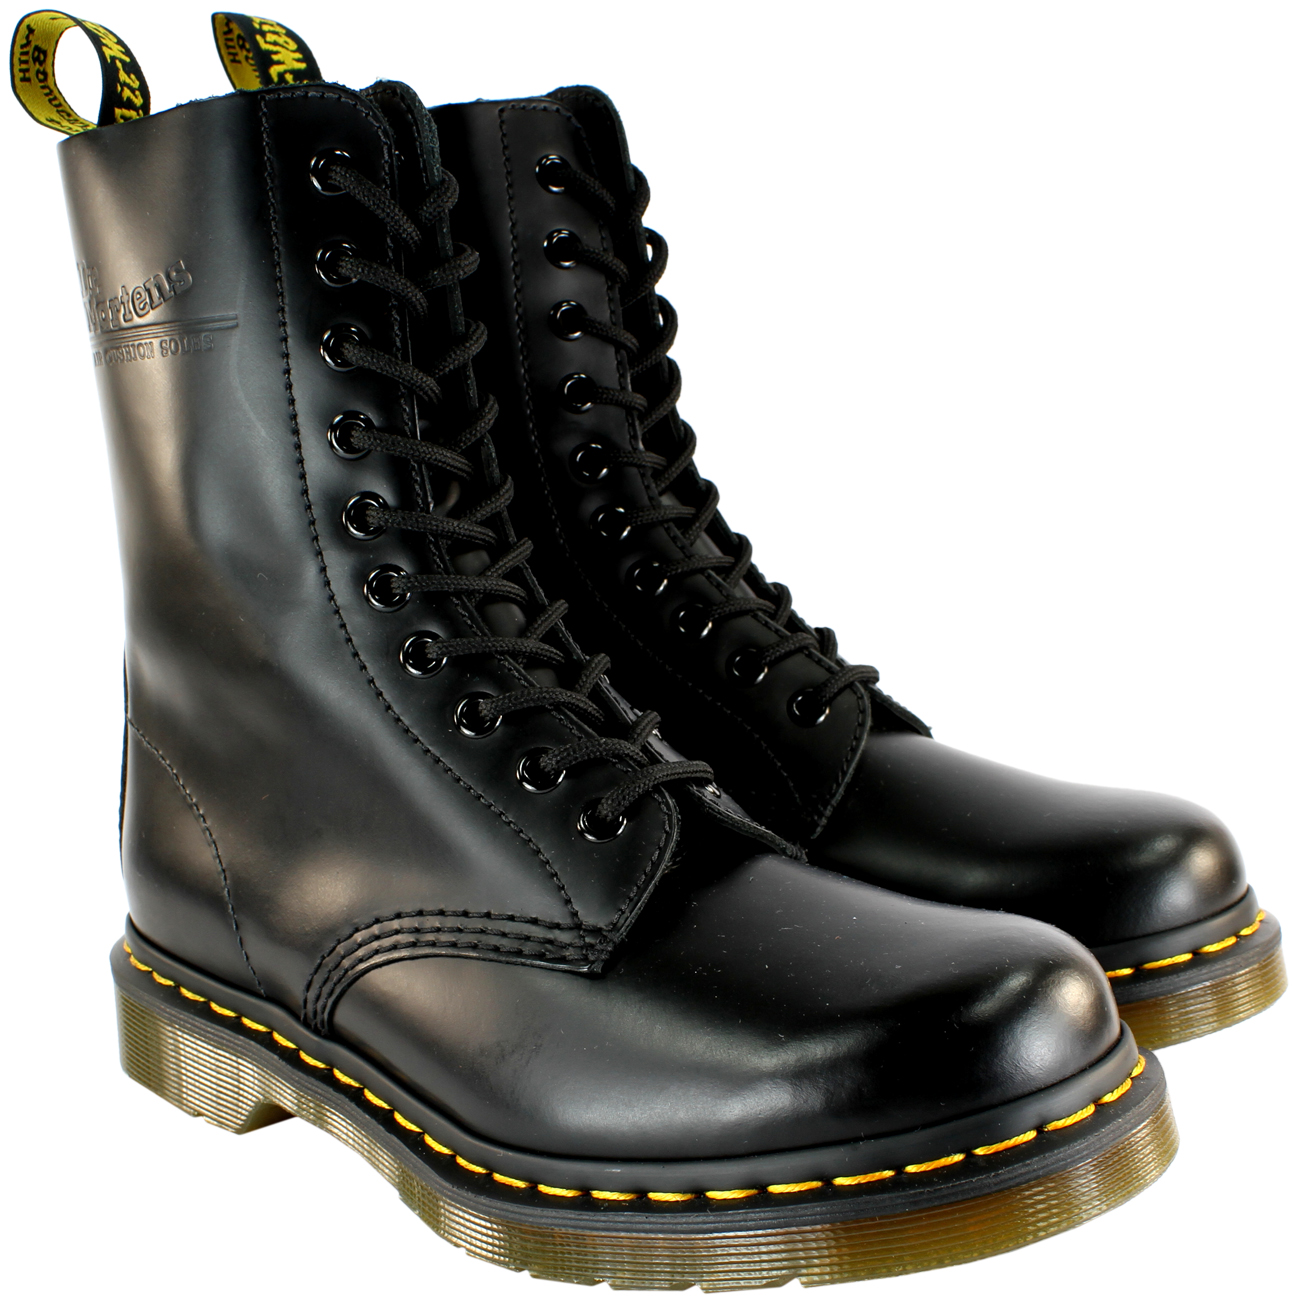 Mens Dr Martens Classic 1490 Black Vintage Leather Lace Up Ankle Boot All  Sizes | eBay